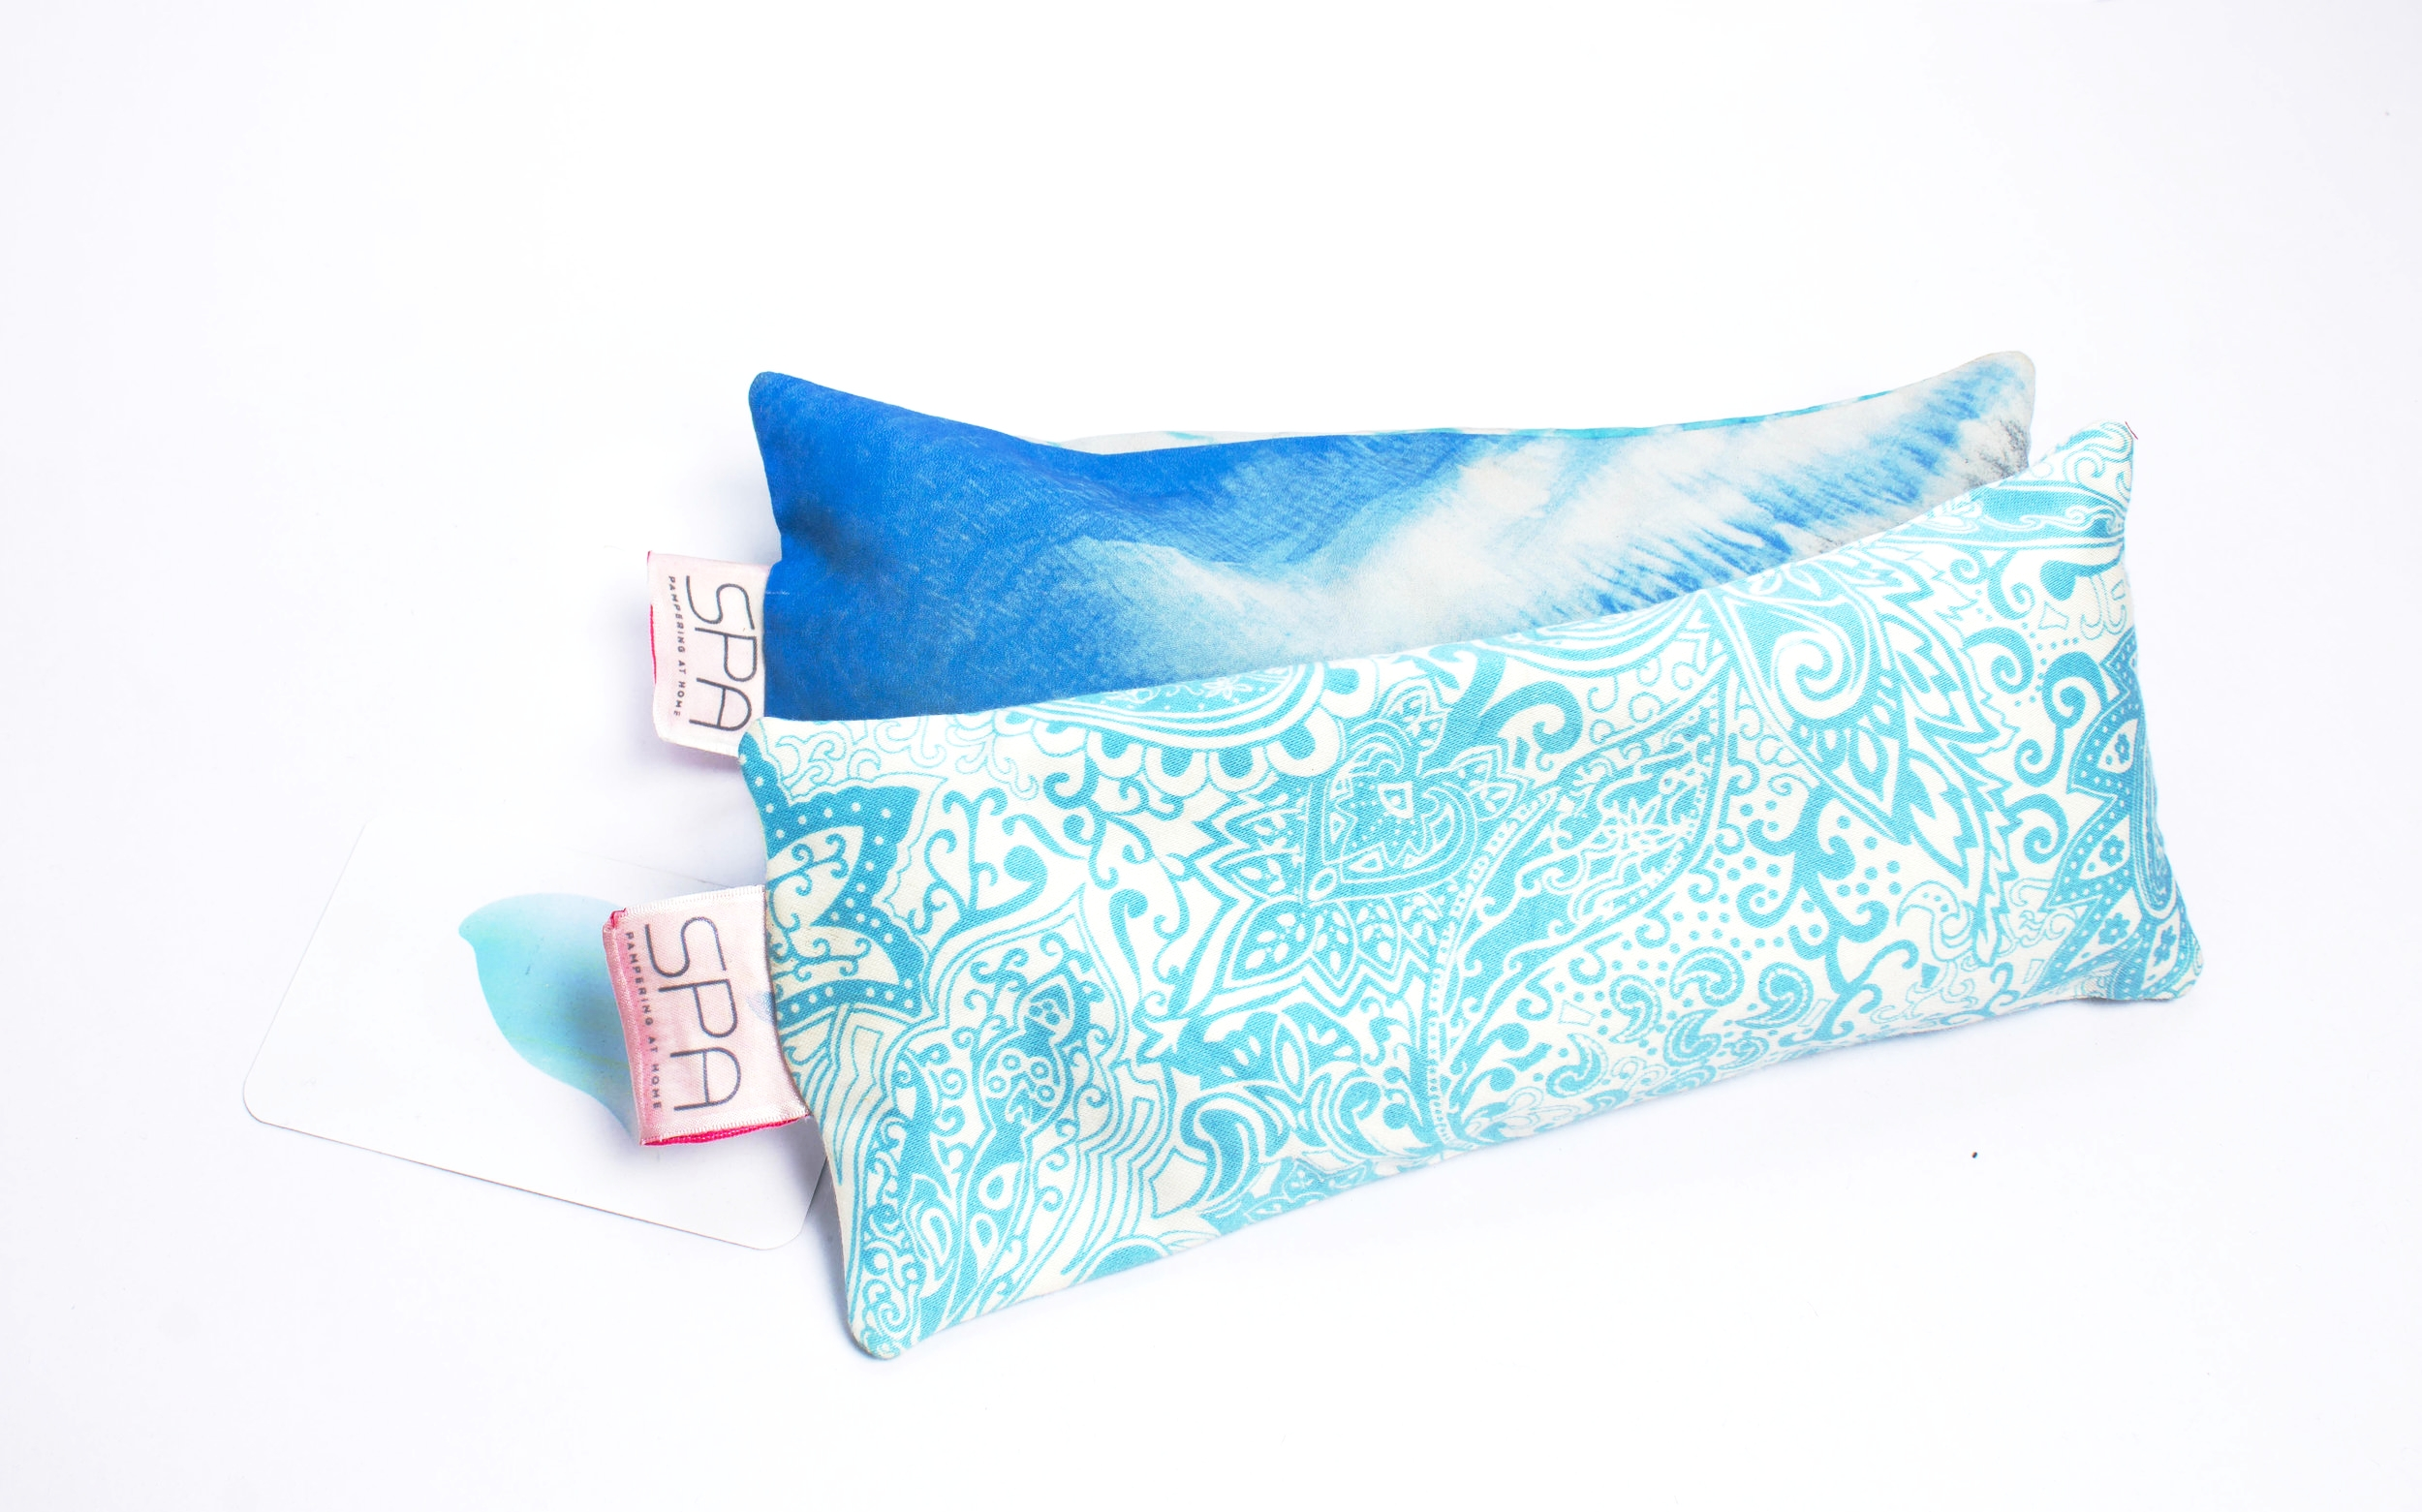 Eye Pillow - Filled with organic lavender and chamomile buds creates a soothing aroma and gently put just enough pressure on the eye lids to keep shut and keep the lights out.Try using this during your meditation, for a power nap and when nursing stress headaches.Price: NGN 5,000